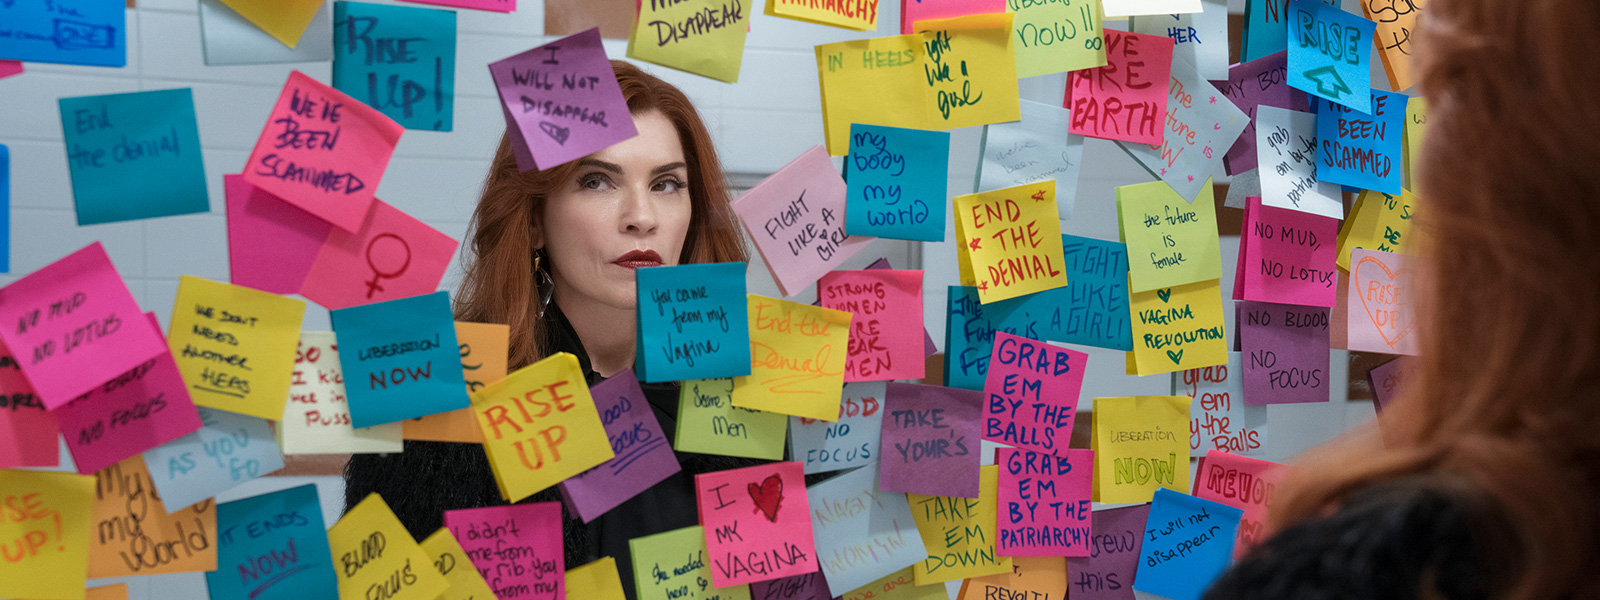 dietland-episode-104-kitty-margulies-post-800×600